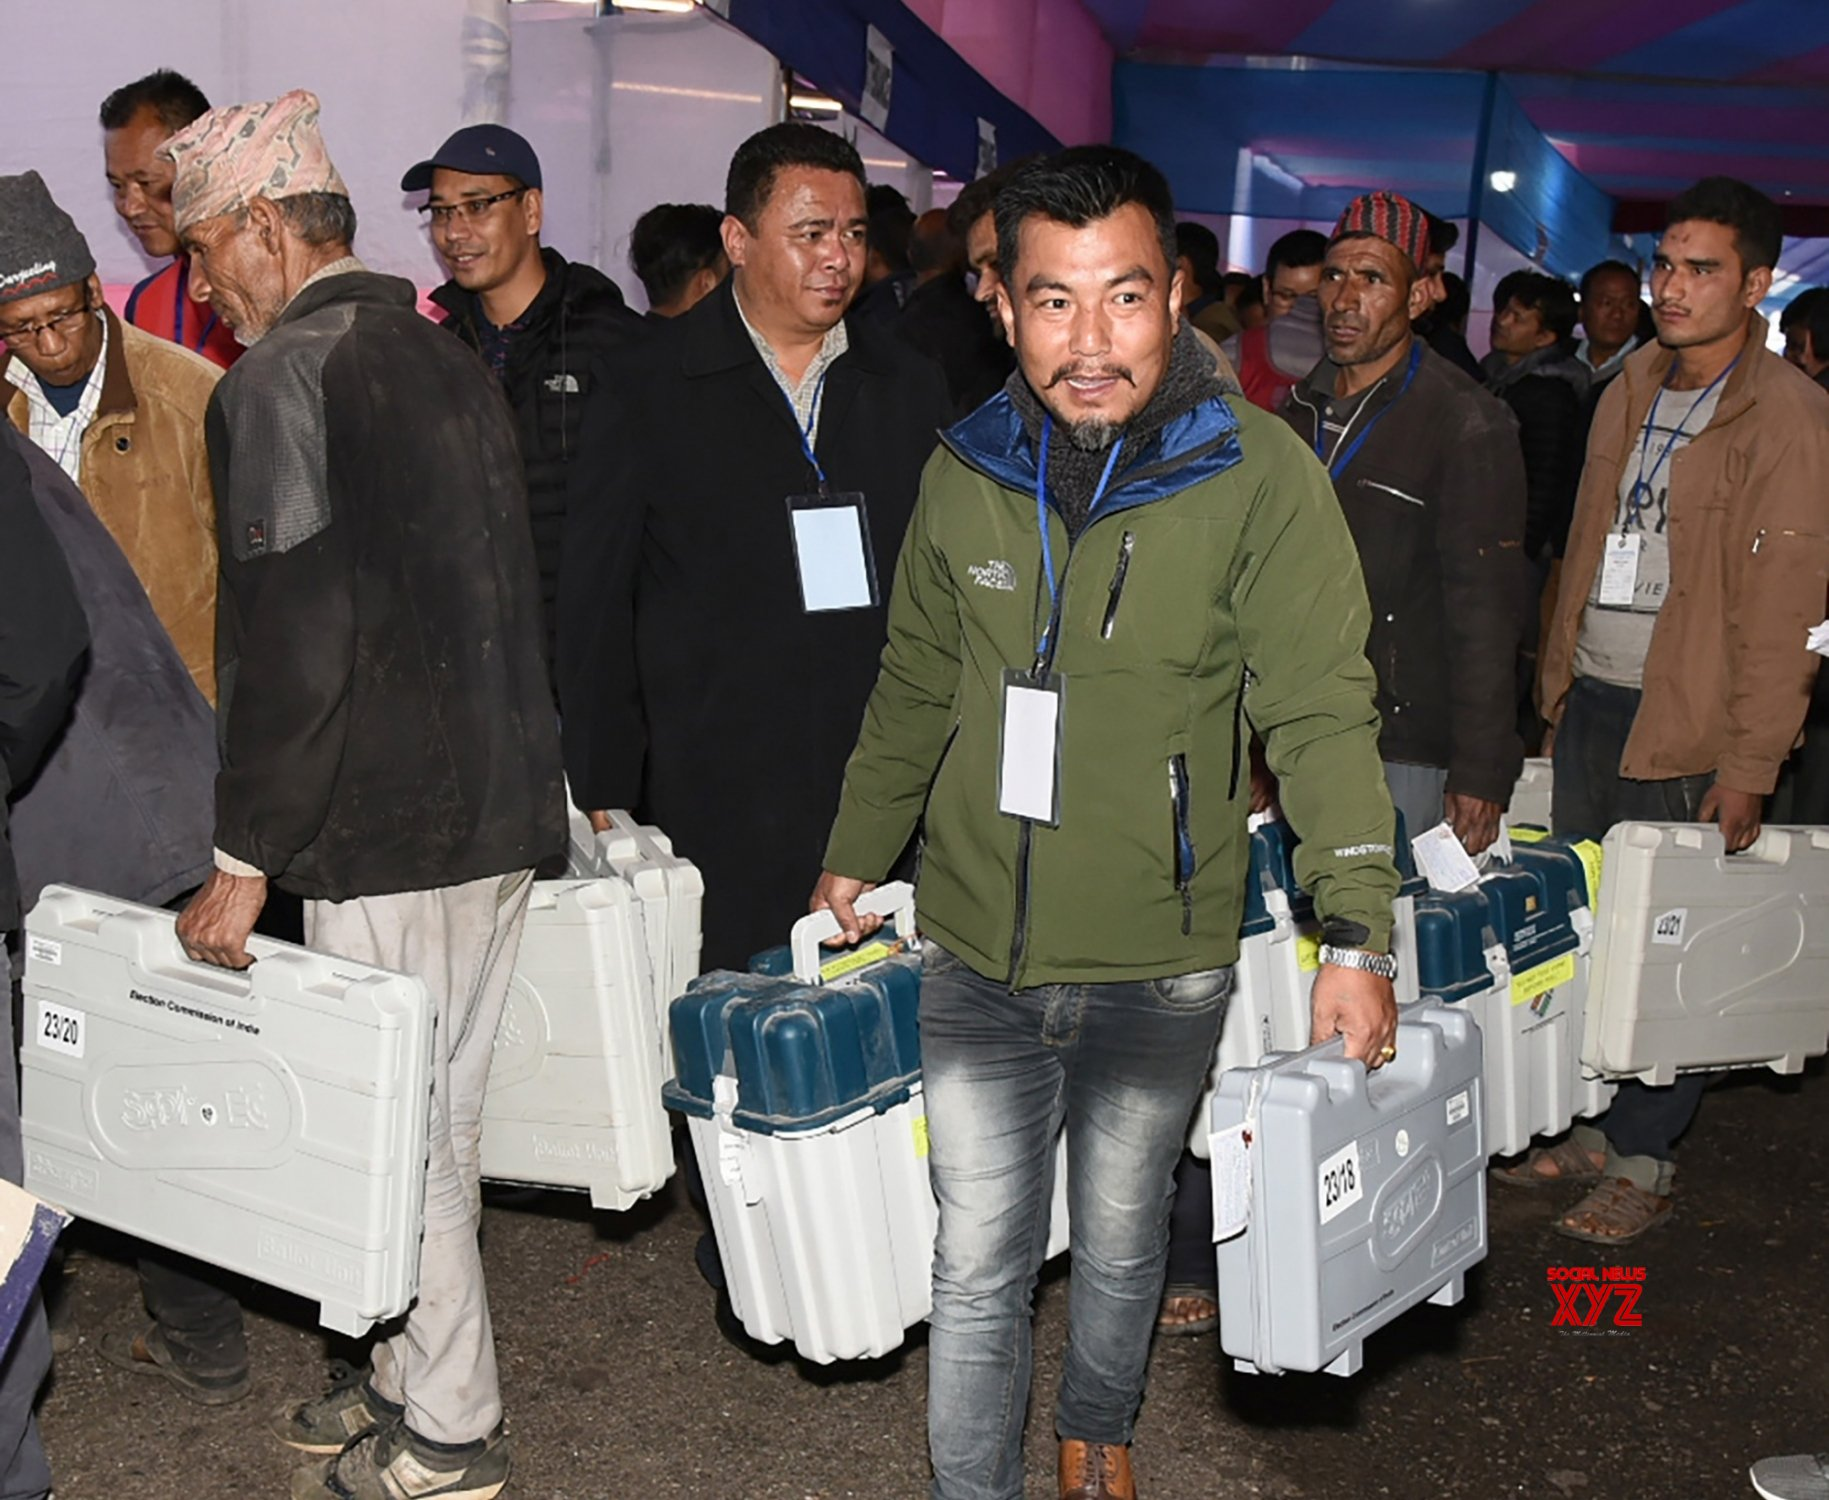 Darjeeling (West Bengal): 2019 Lok Sabha elections - Polling officials collect EVMs and other necessary inputs #Gallery